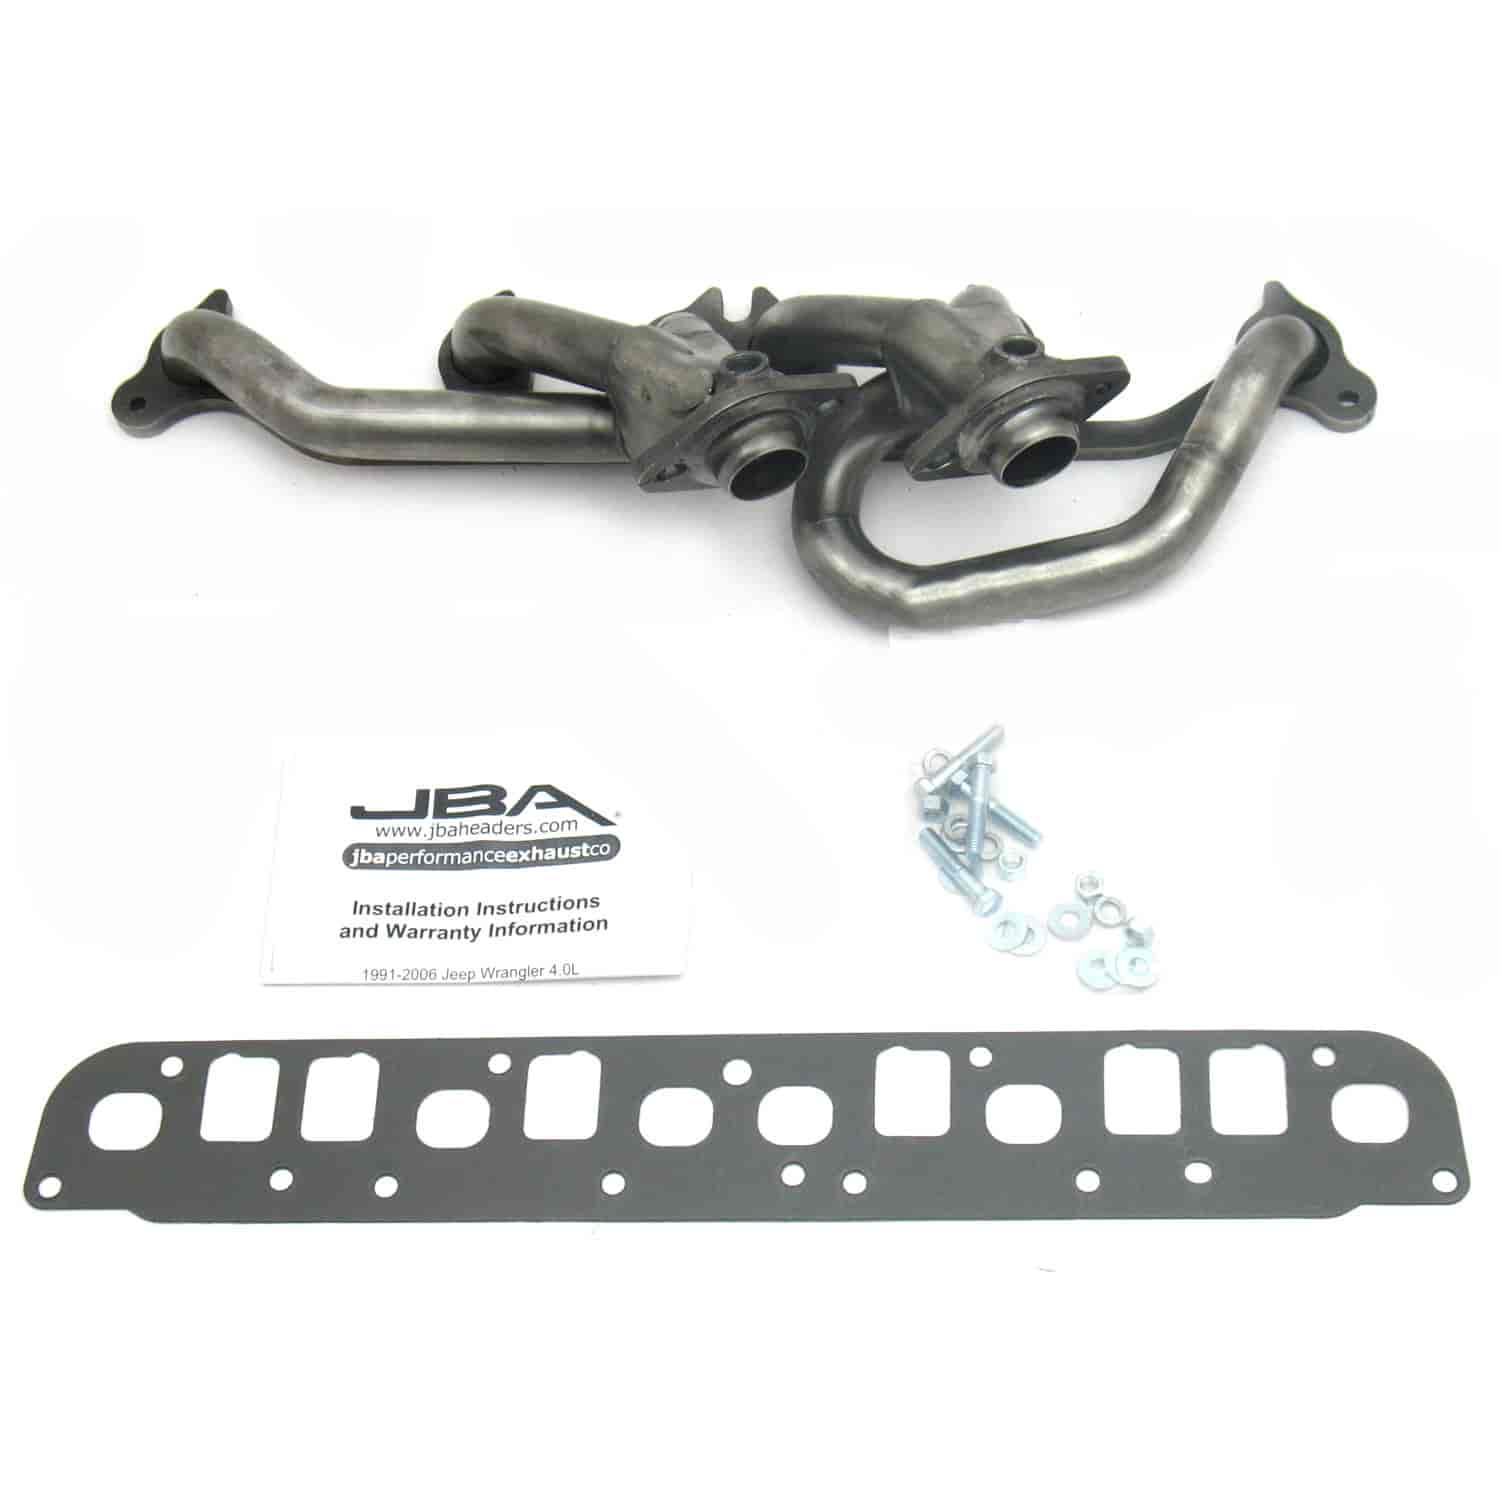 JBA 1527S - JBA Mopar Shorty Headers